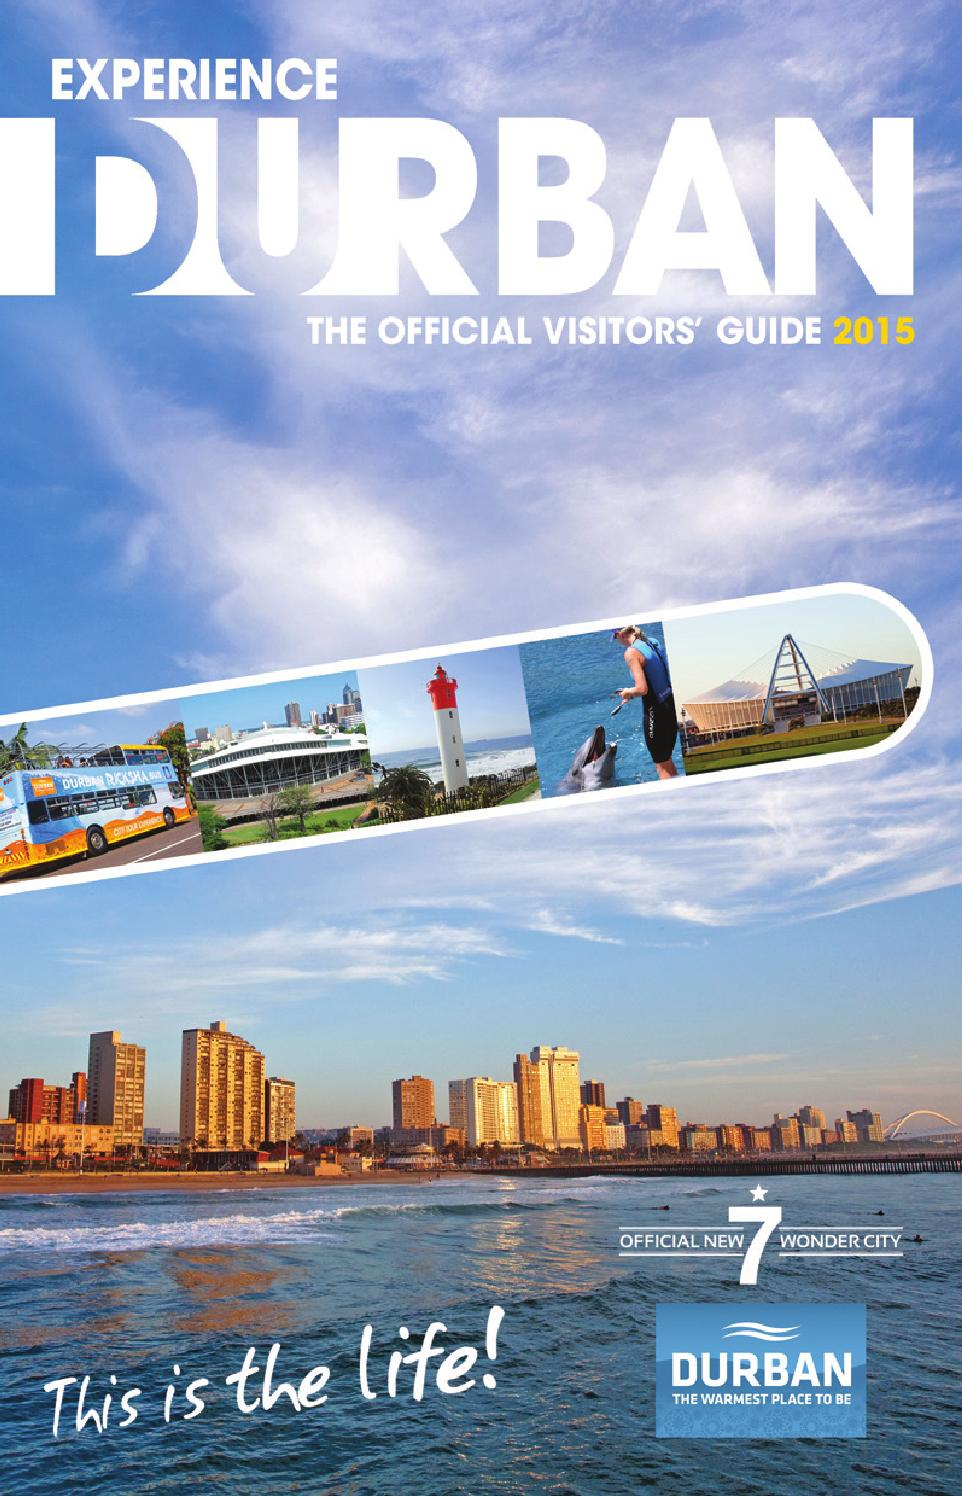 Experience Durban - The Official Visitors' Guide 2015 by Artworks - issuu